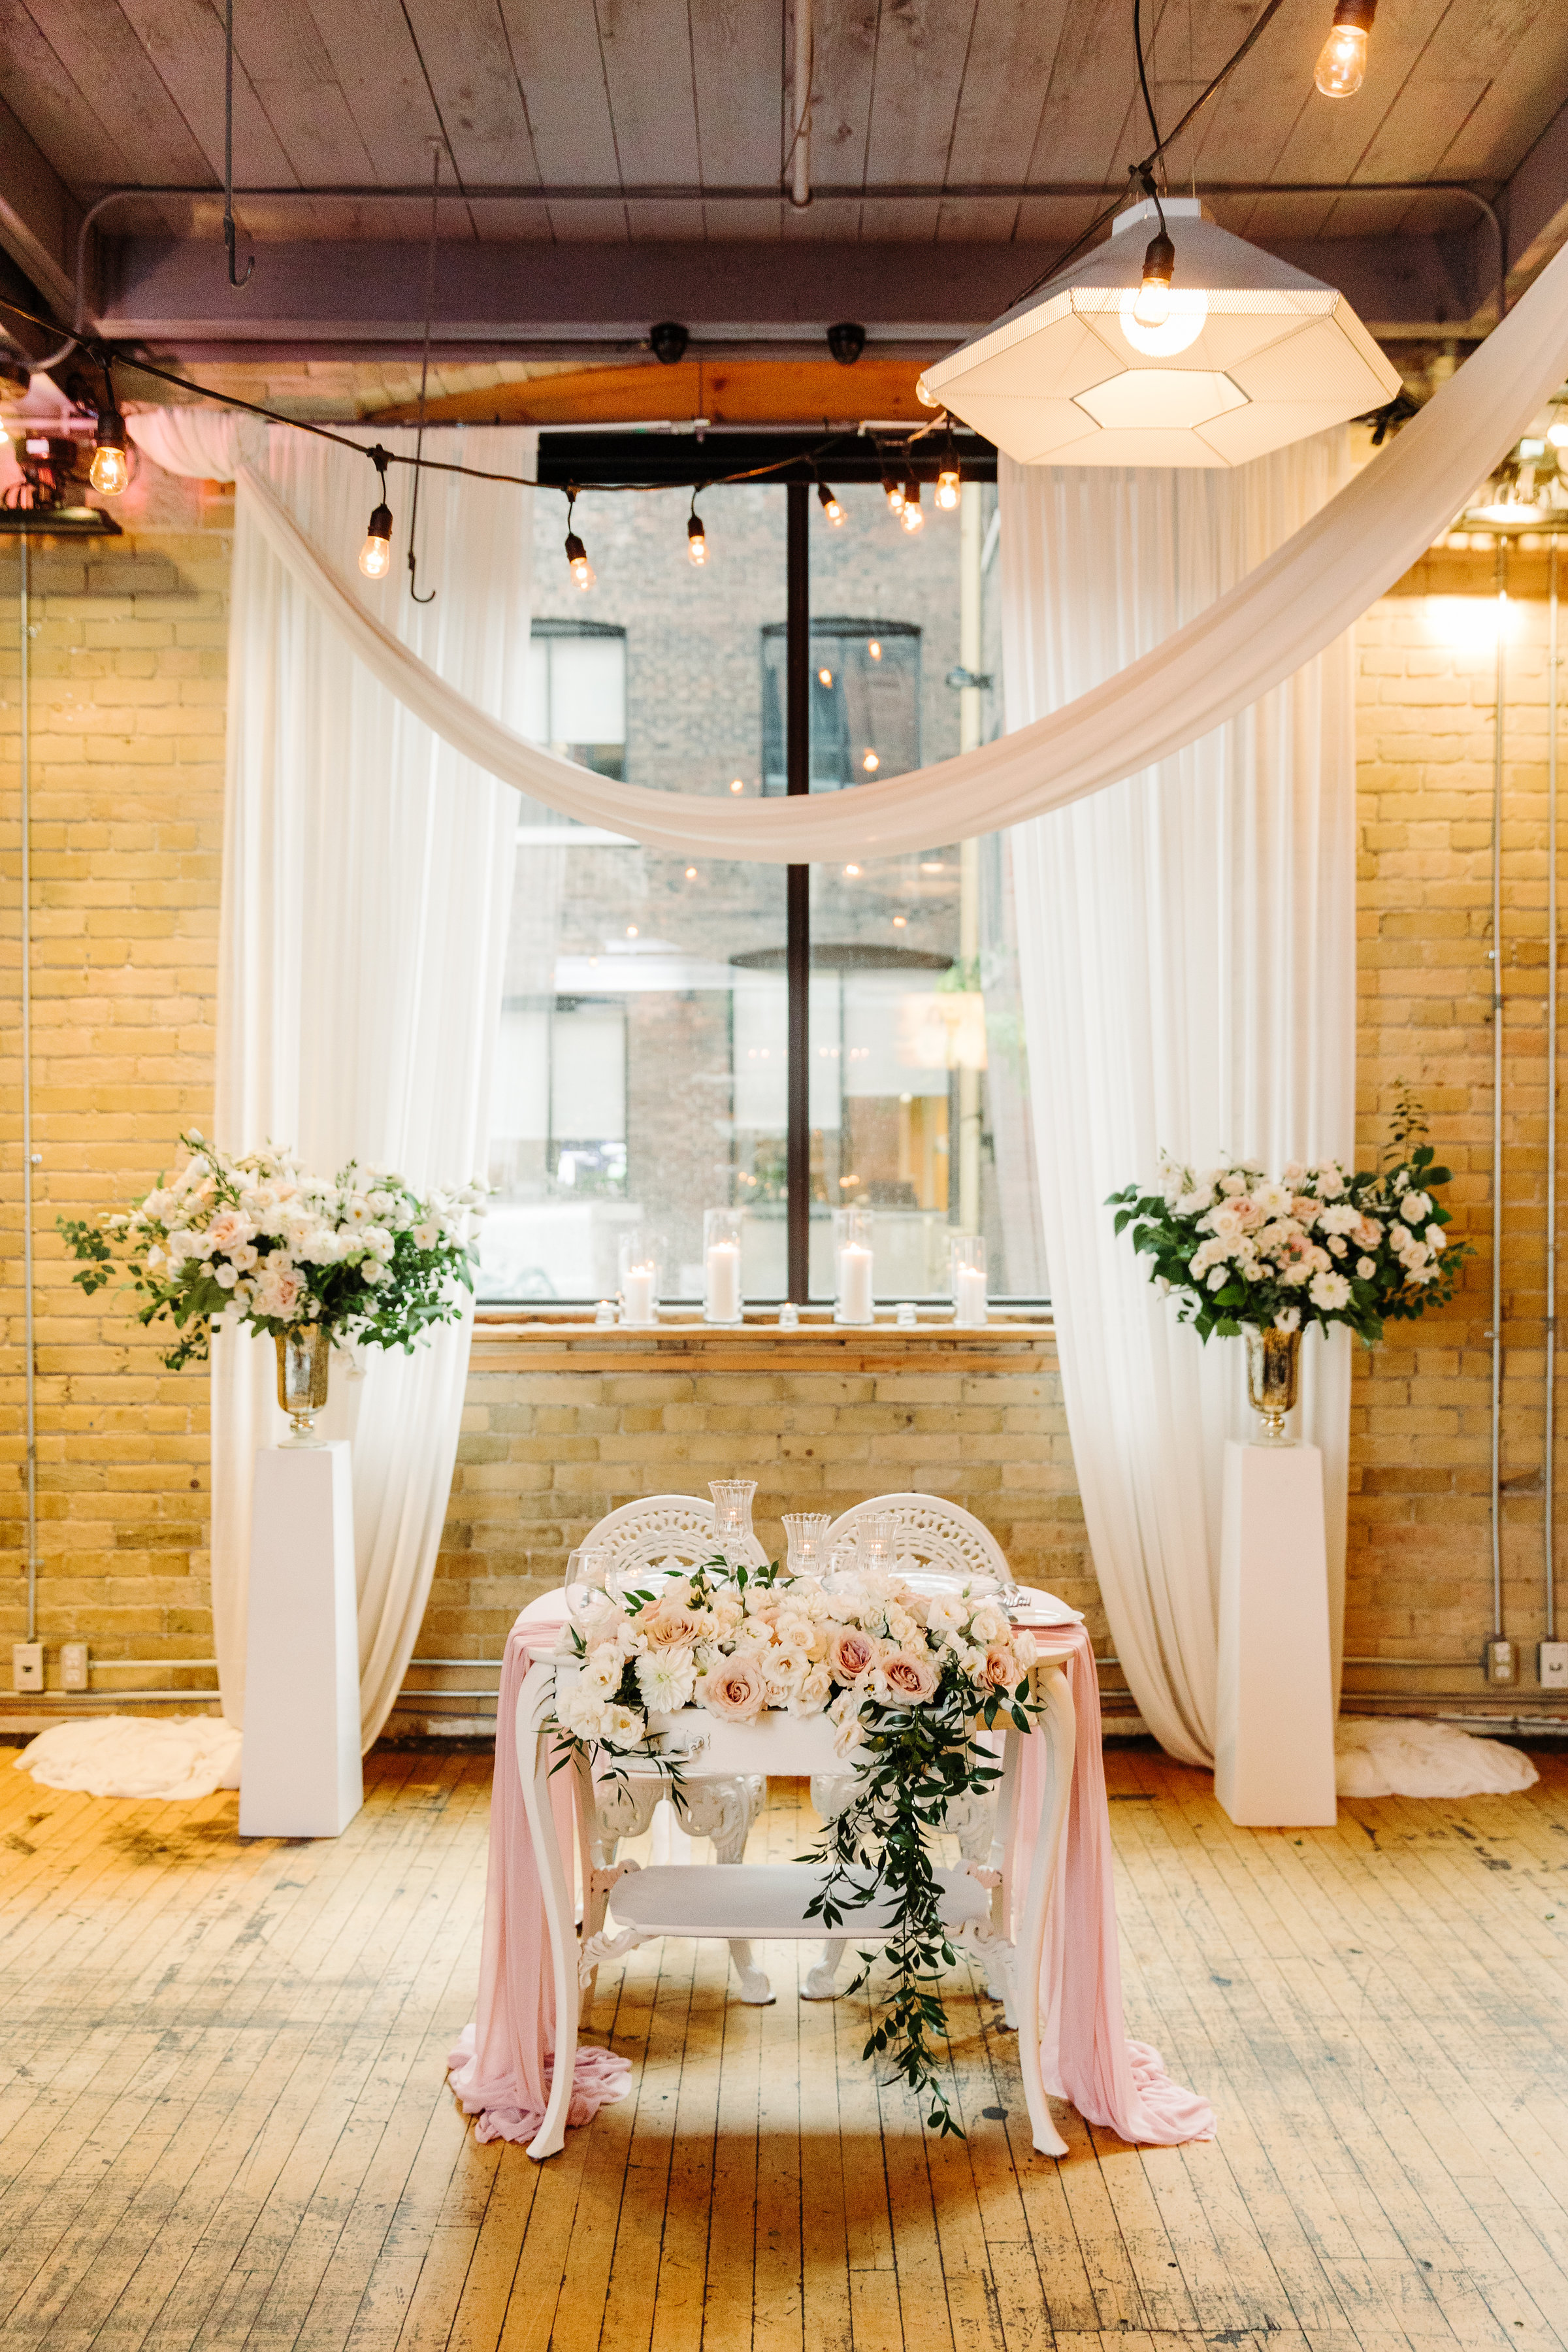 2nd_floor_events_toronto_wedding_photography_magnolia_studios-515.jpg